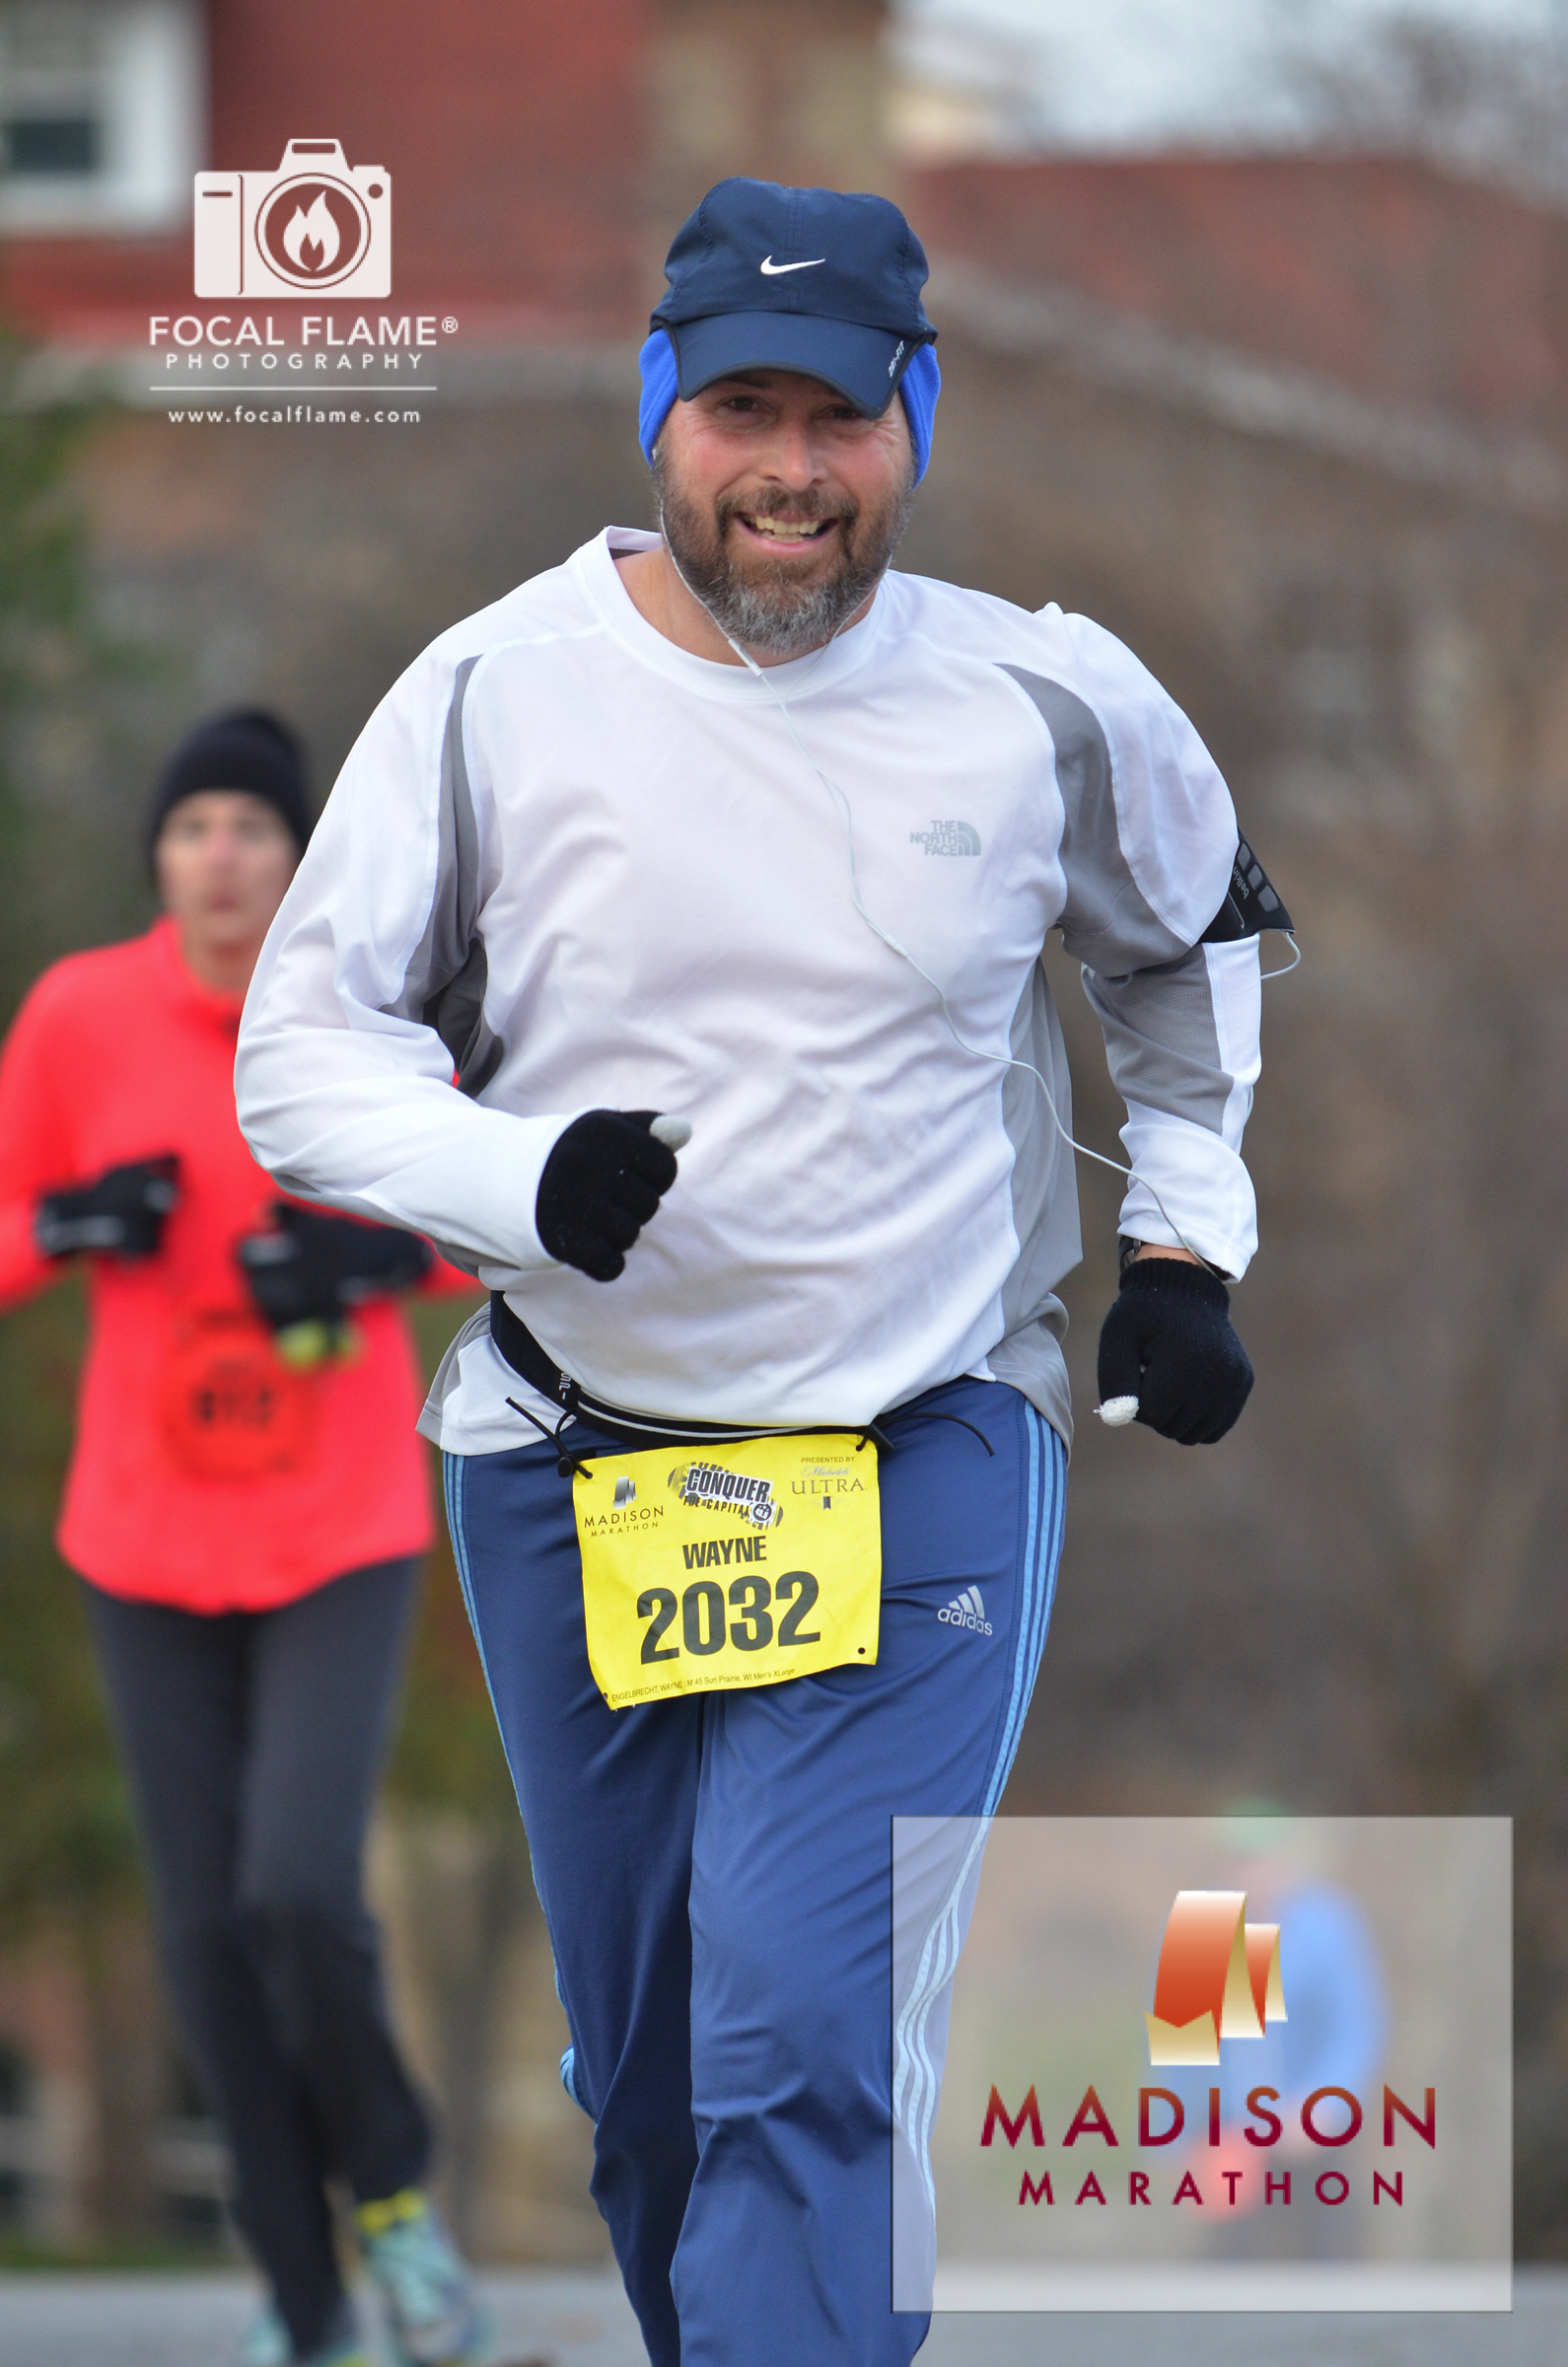 Wayne Enbelbrecht runs the 2014 Madison Fall Marathon. He has volunteered to help support the race for the past 10 years. © 2014 Focal Flame Photography | Photo credit: Austin Cope